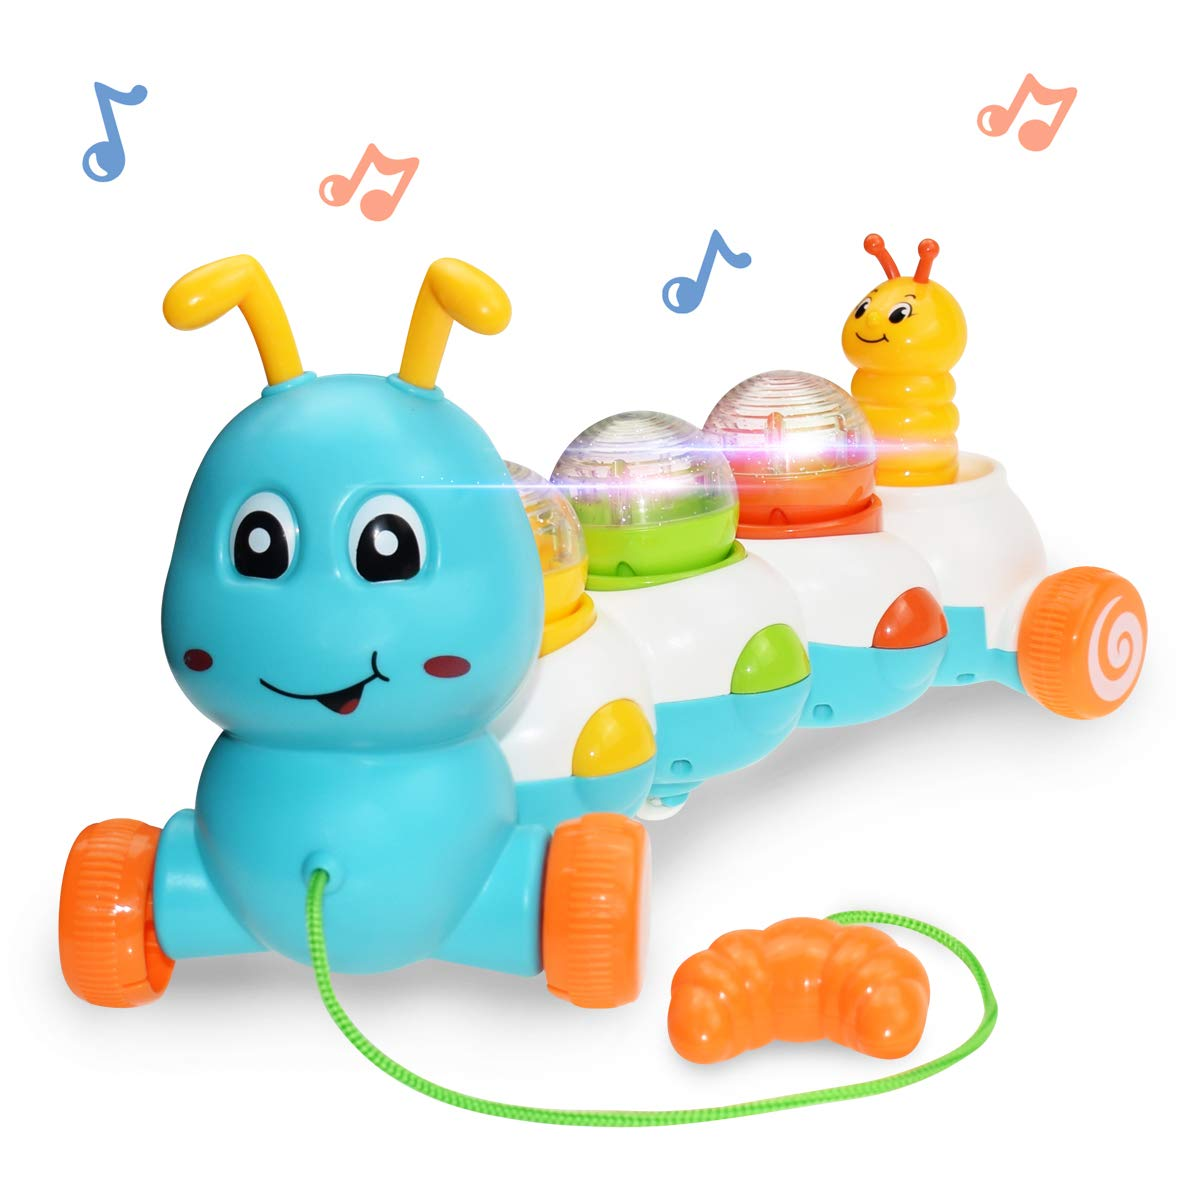 Baby Toddlers Toys Musical Pull Along Worm Toys With Light And Sound Learn To Walk Baby Flashing Toy For Boys Girls Birthday